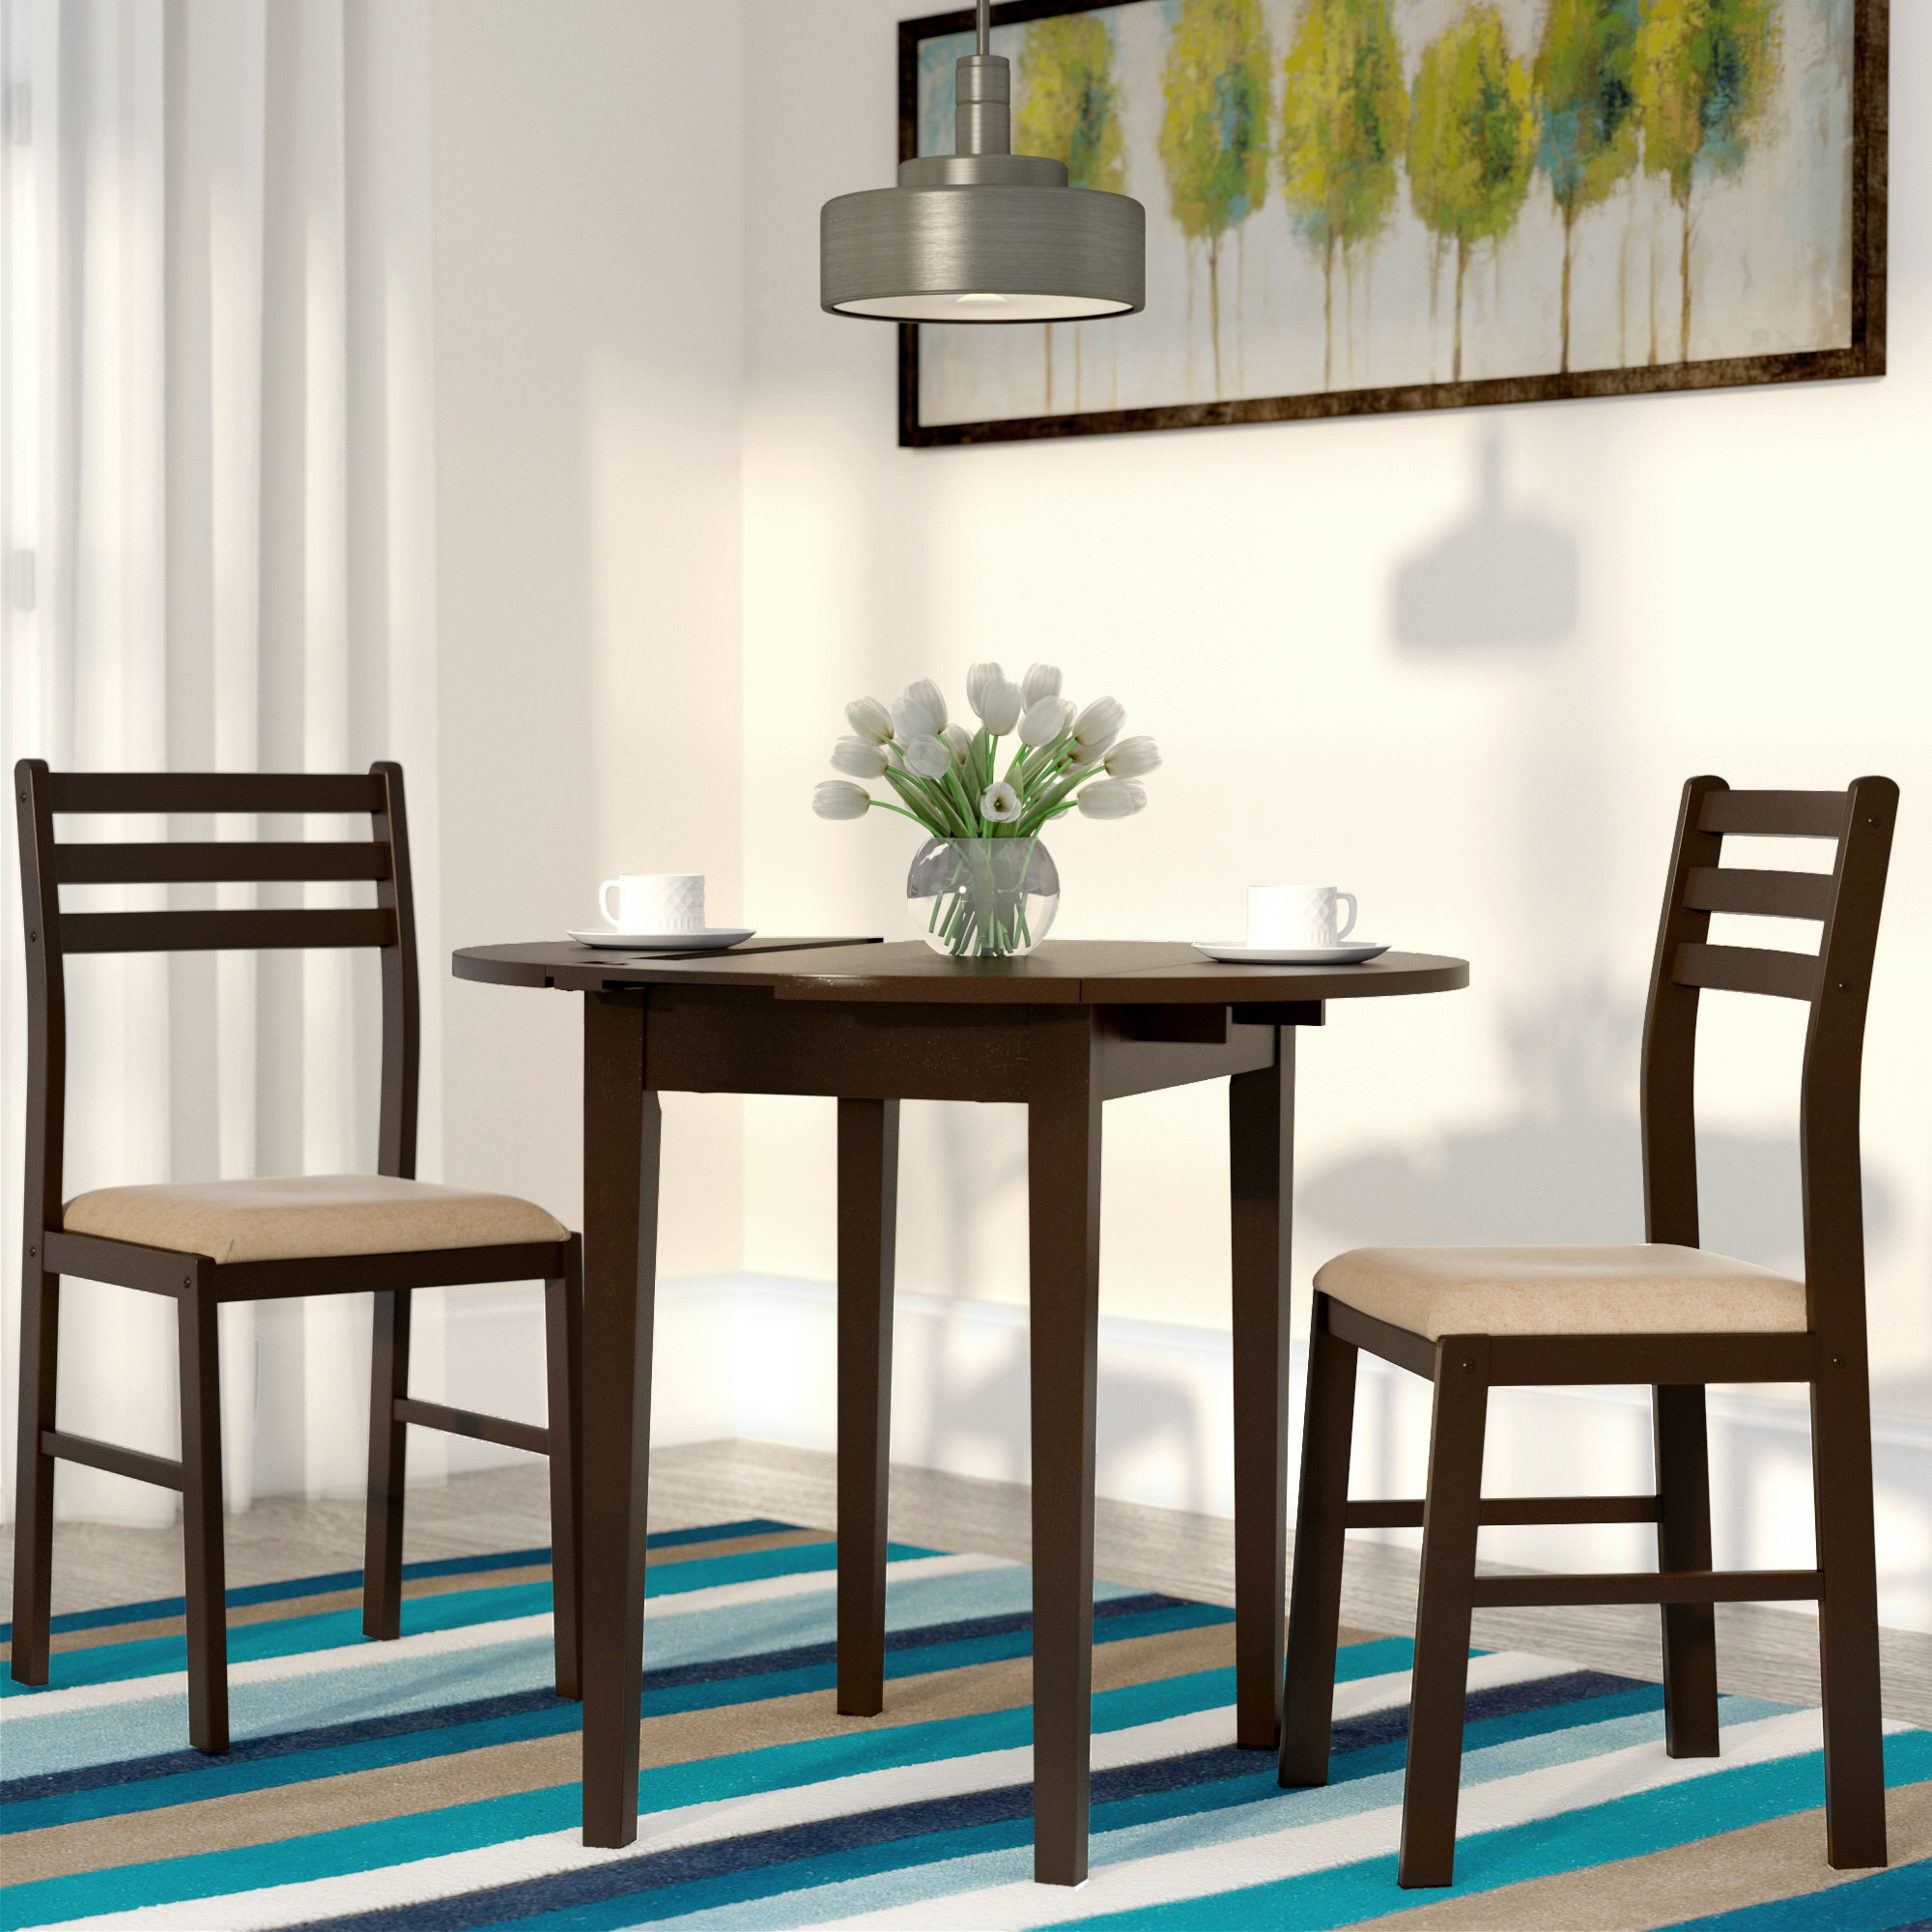 Wayfair With Kinsler 3 Piece Bistro Sets (View 6 of 25)